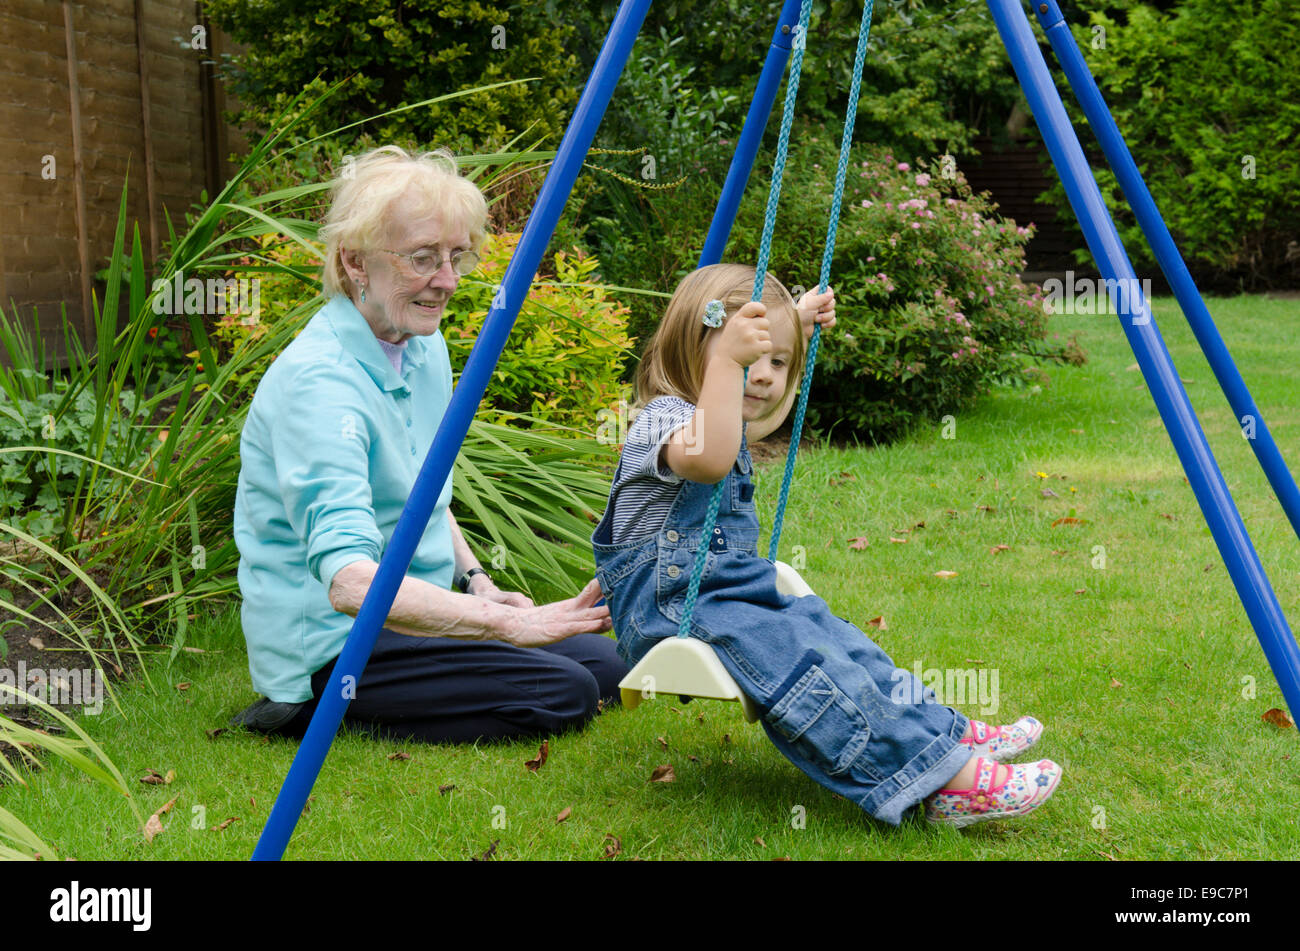 Great-grandmother playing with her great-granddaughter in a garden. UK - Stock Image